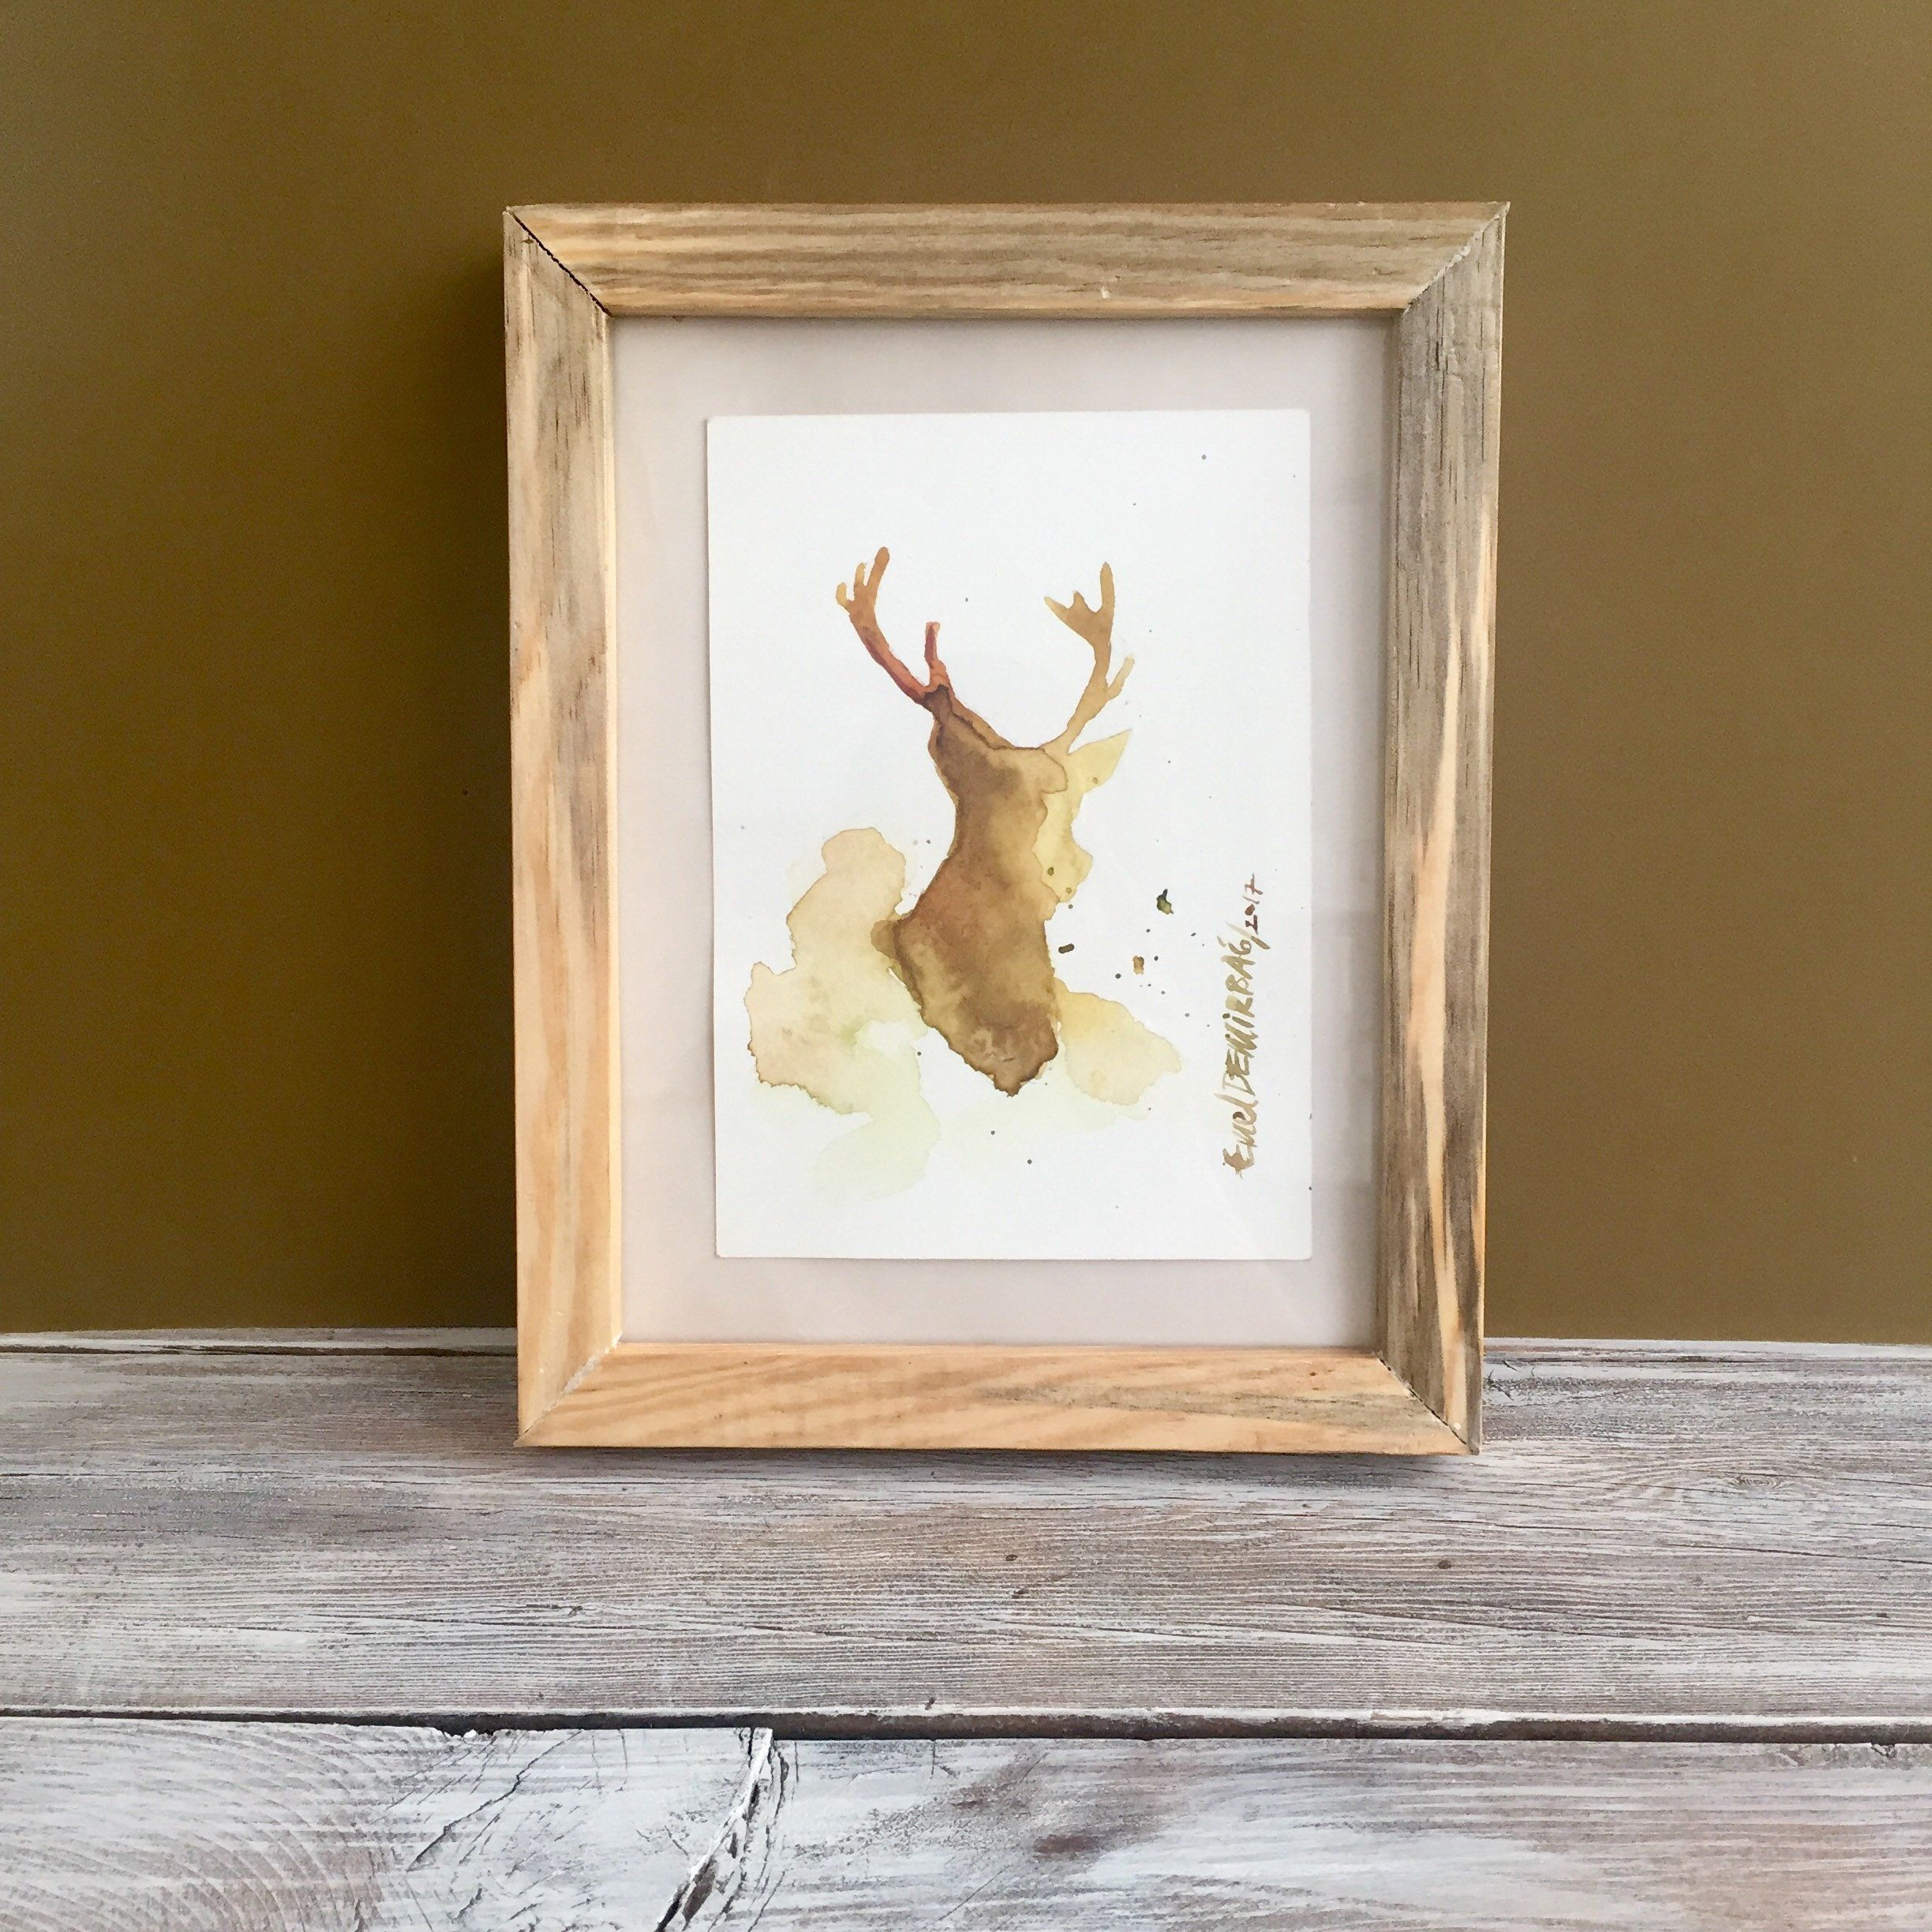 44b0ecda8 Deer Silhouette, Original Watercolor Painting, Forest Animal Art, Drawing  Abstract, Art Lover Gift, Modern Art Decor, Nursery Art Decor